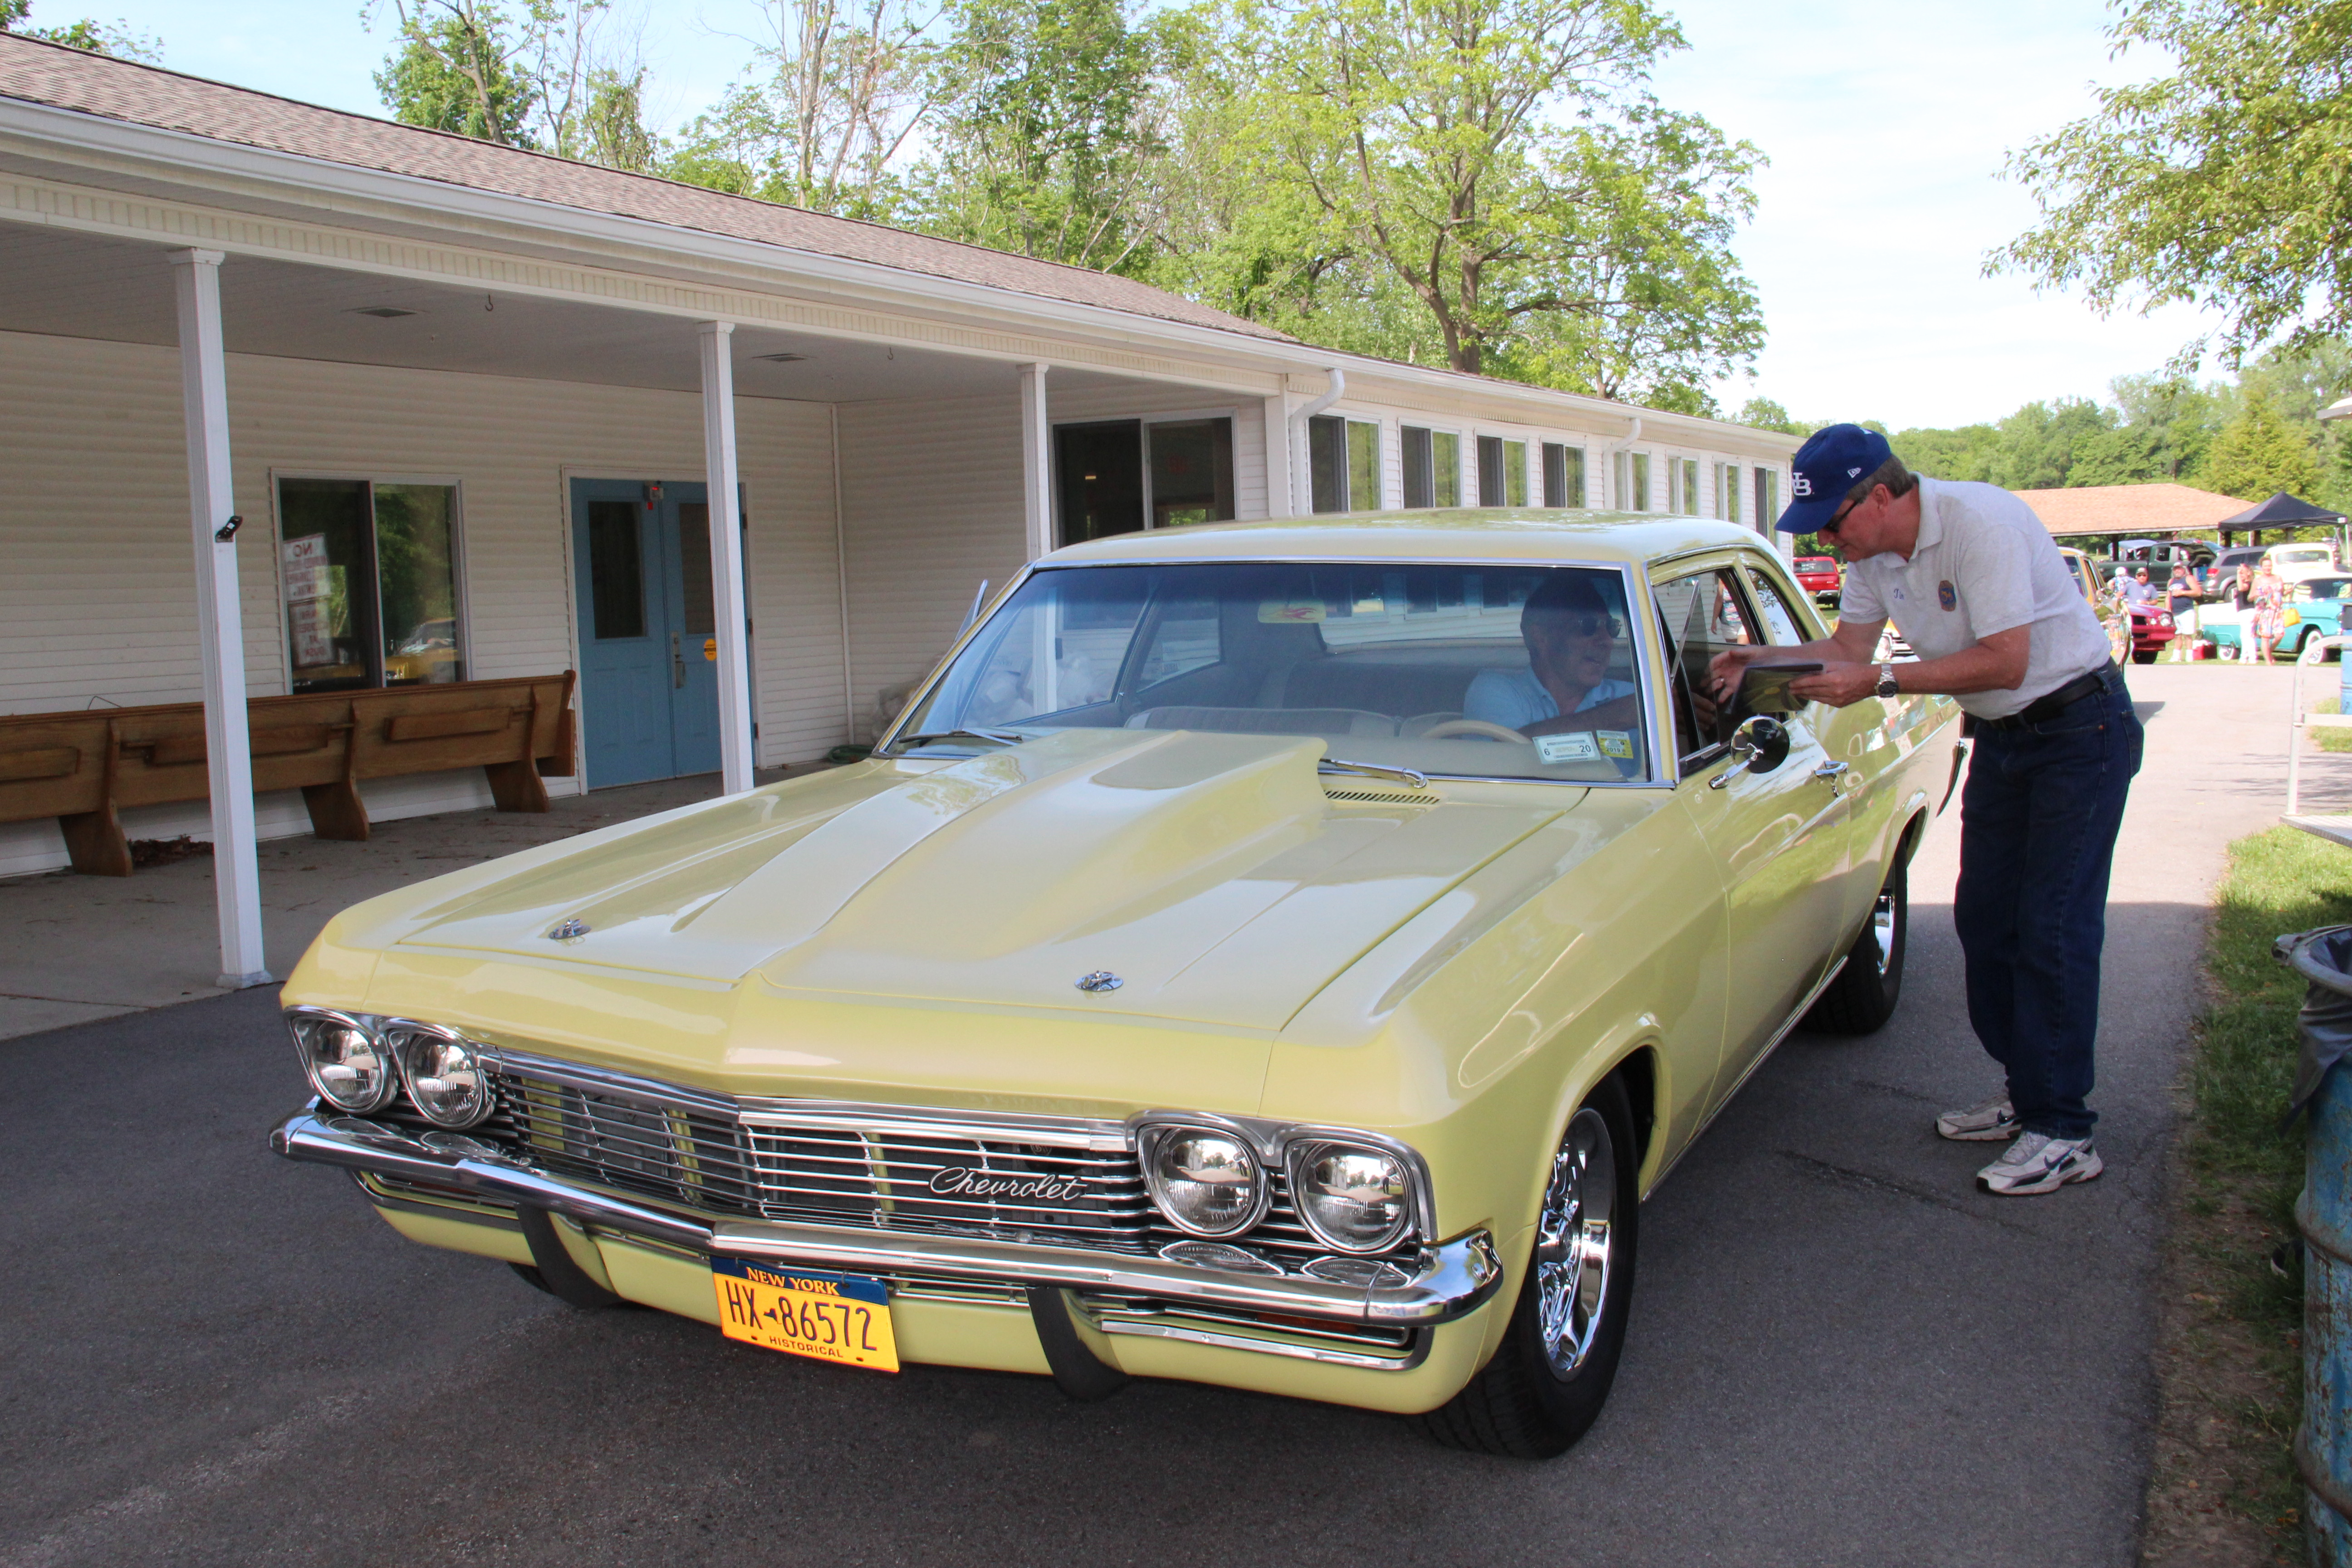 IMG_0772-Class-19-2nd-Mike-Mesi-1965-Chevrolet-Impala